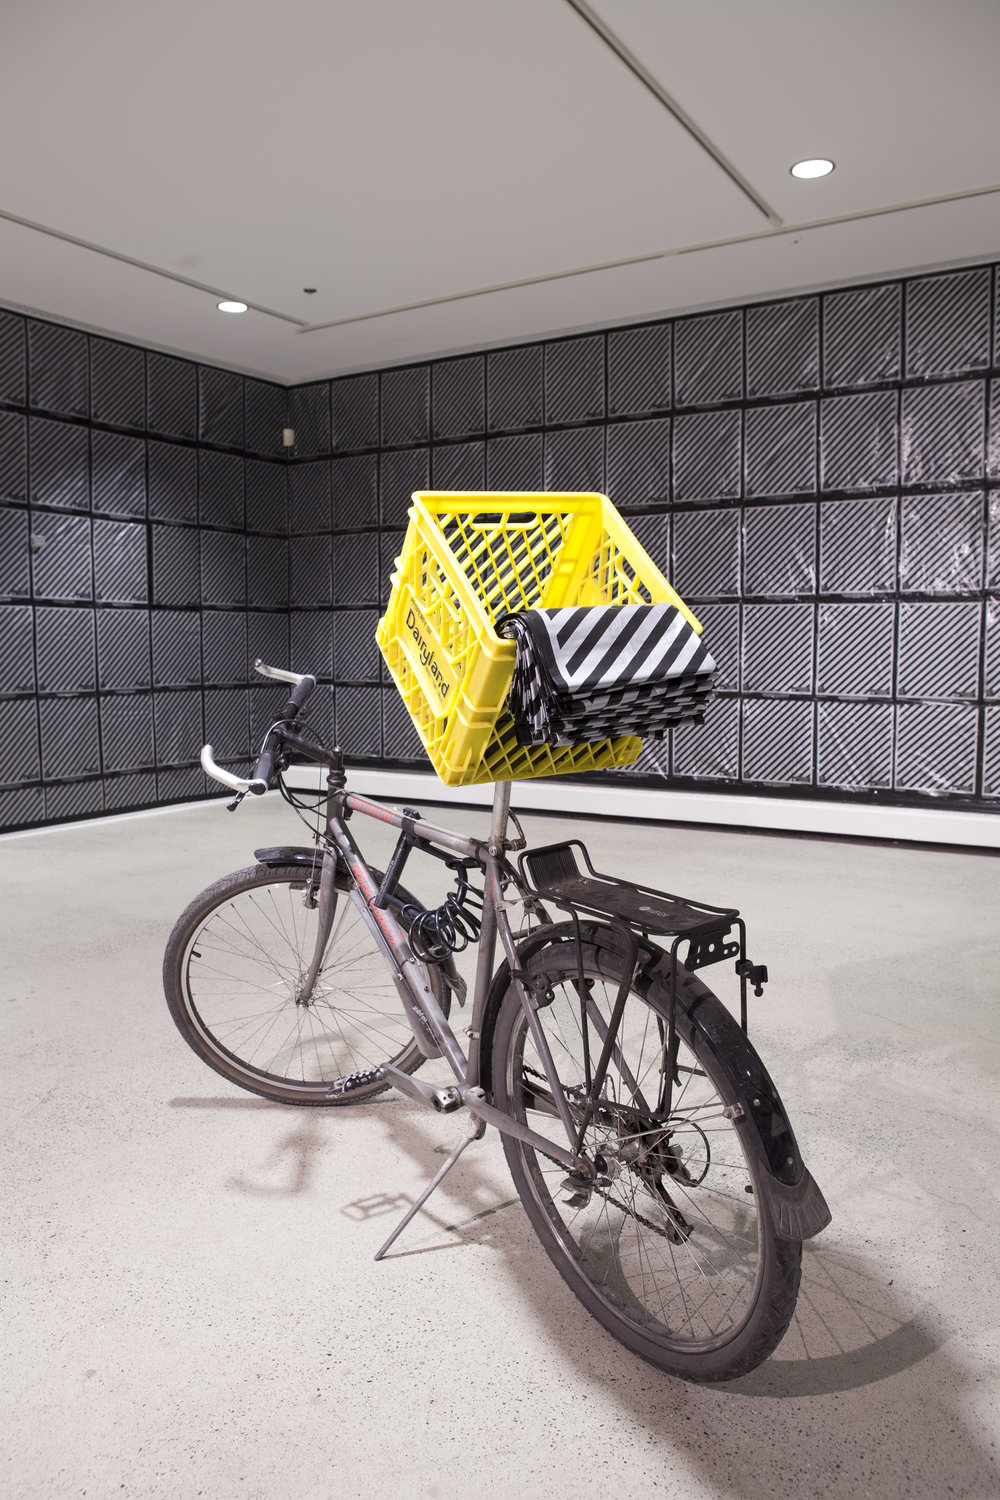 "Installation view: Bicycle, 2000 Lagmitz shopping bag, Gareth James's Art Work, "" Lagmitz (PRIMBB)"" , Dairy Basket"